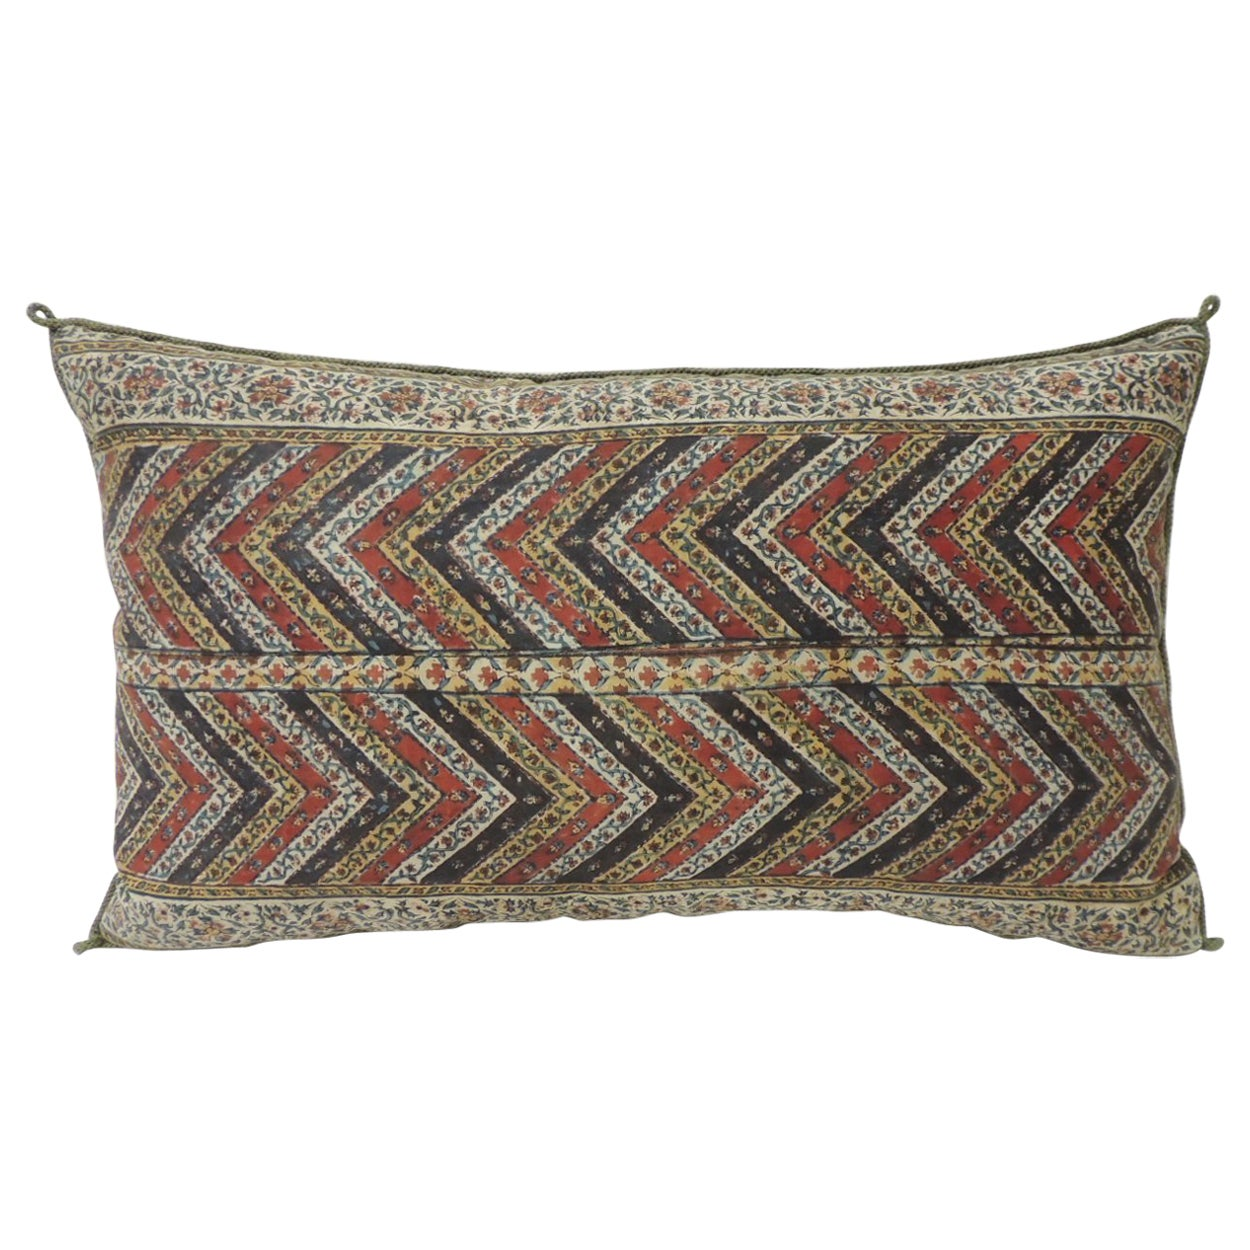 Vintage Indian Red and Gold Long Decorative Lumbar Pillow with Rope Trim